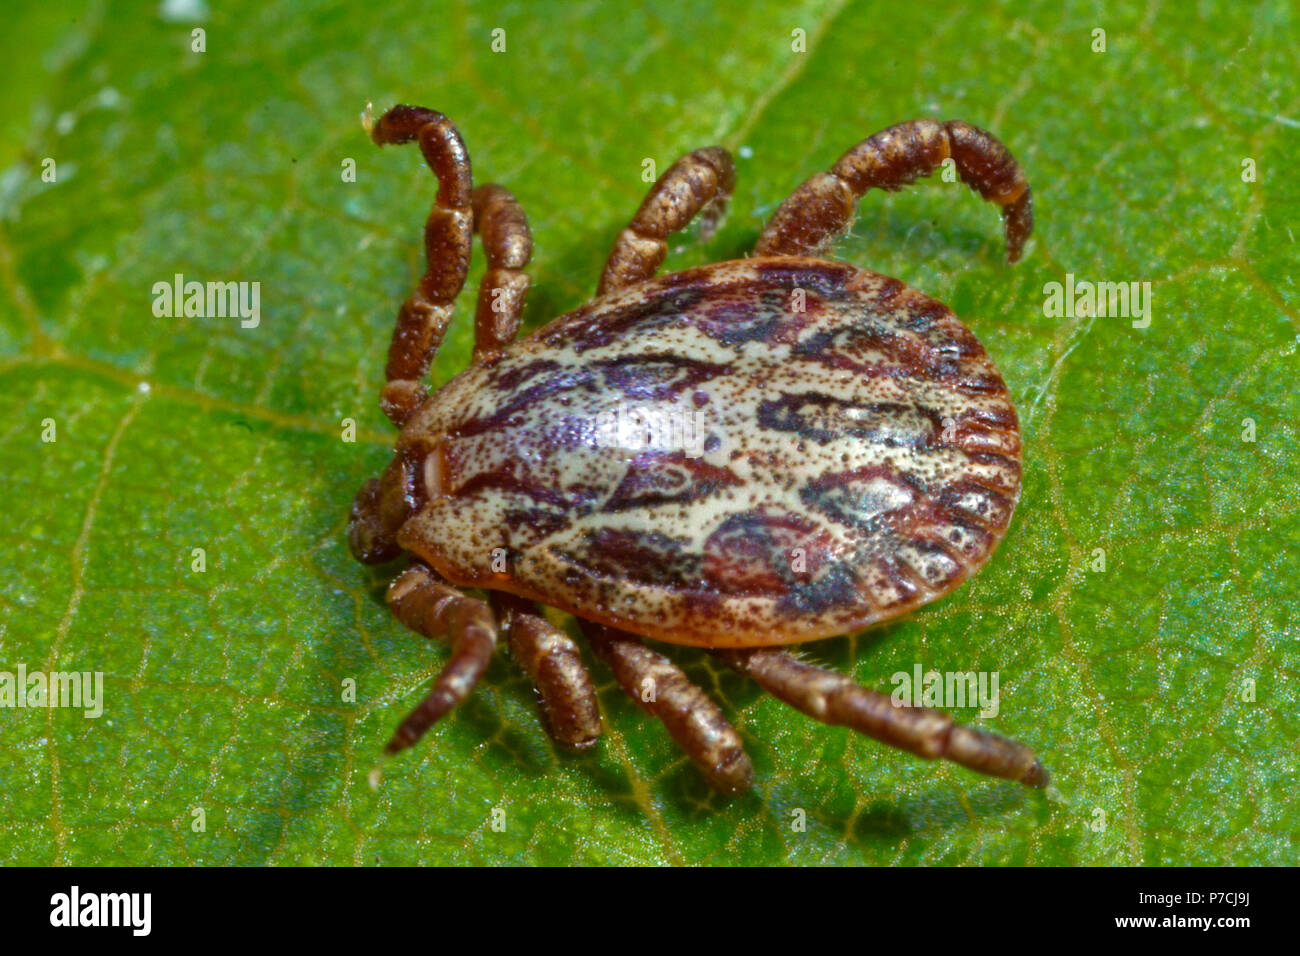 ornate cow tick, male, (Dermacentor reticulatus) - Stock Image